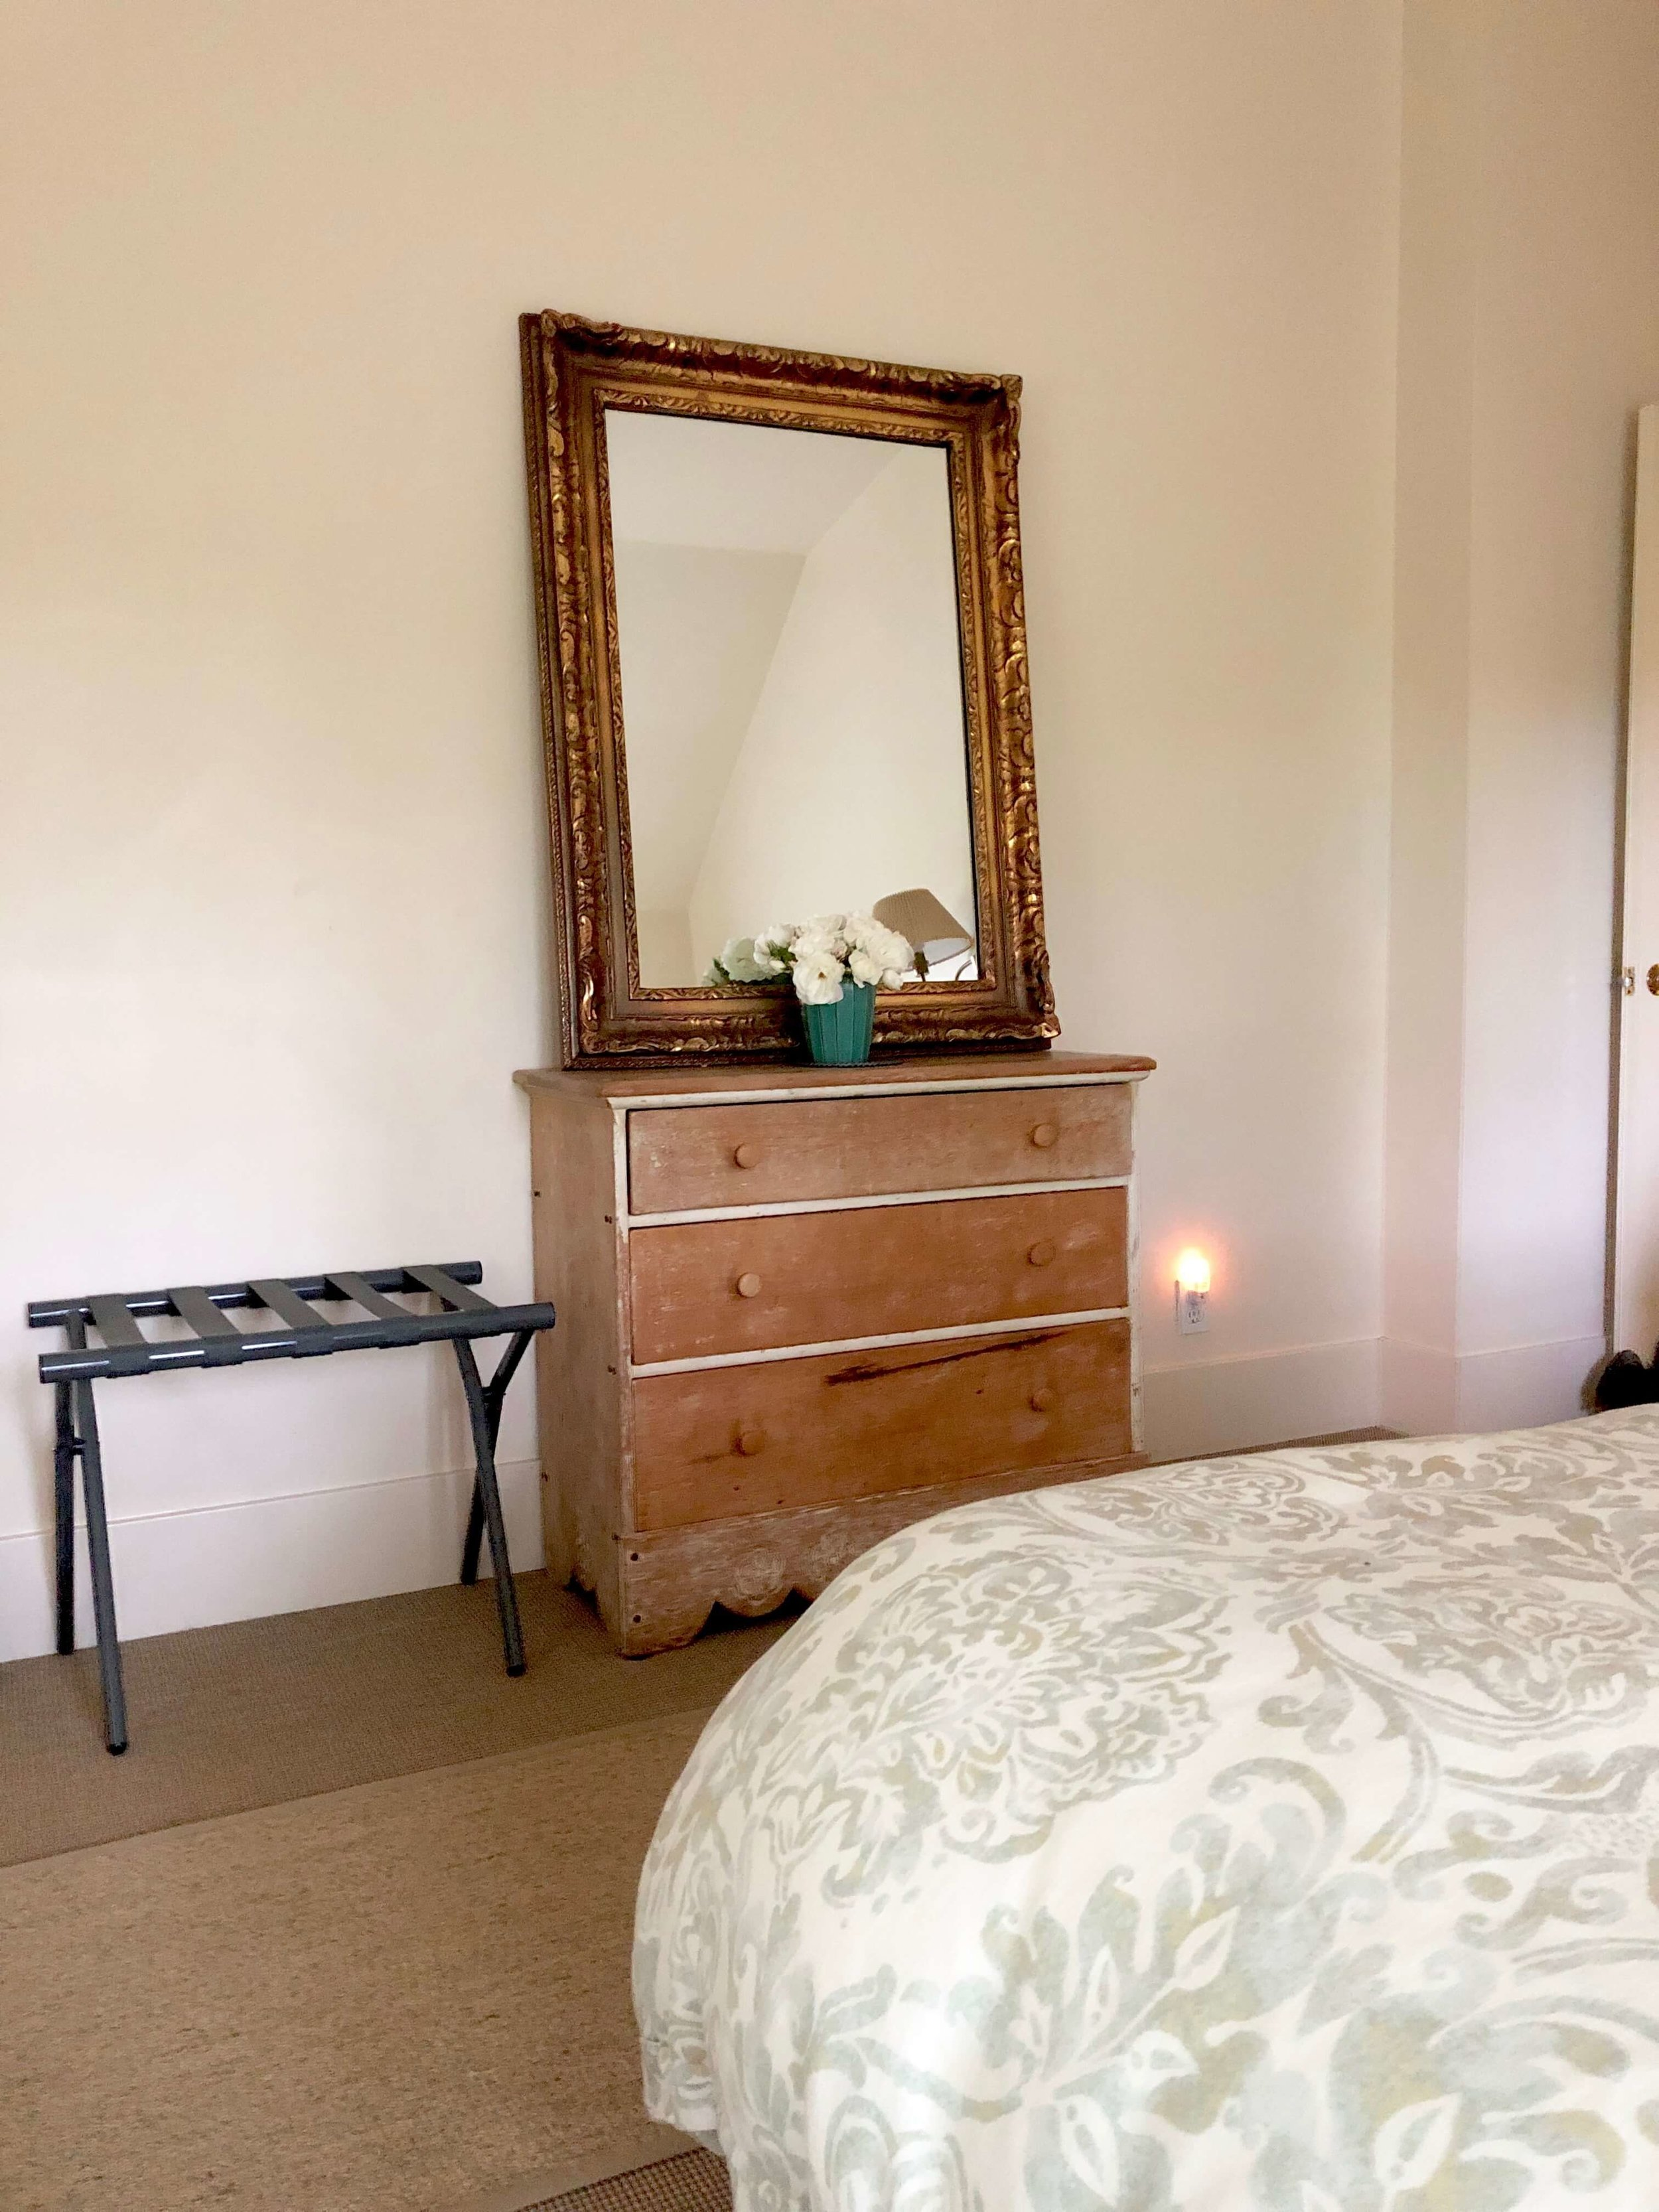 Simple rustic furniture, high quality bed linens, white roses and all needs thoughtfully attended to in the bedrooms of Sonoma Valley Airbnb. #airbnb #winecountry #cottagebedroom